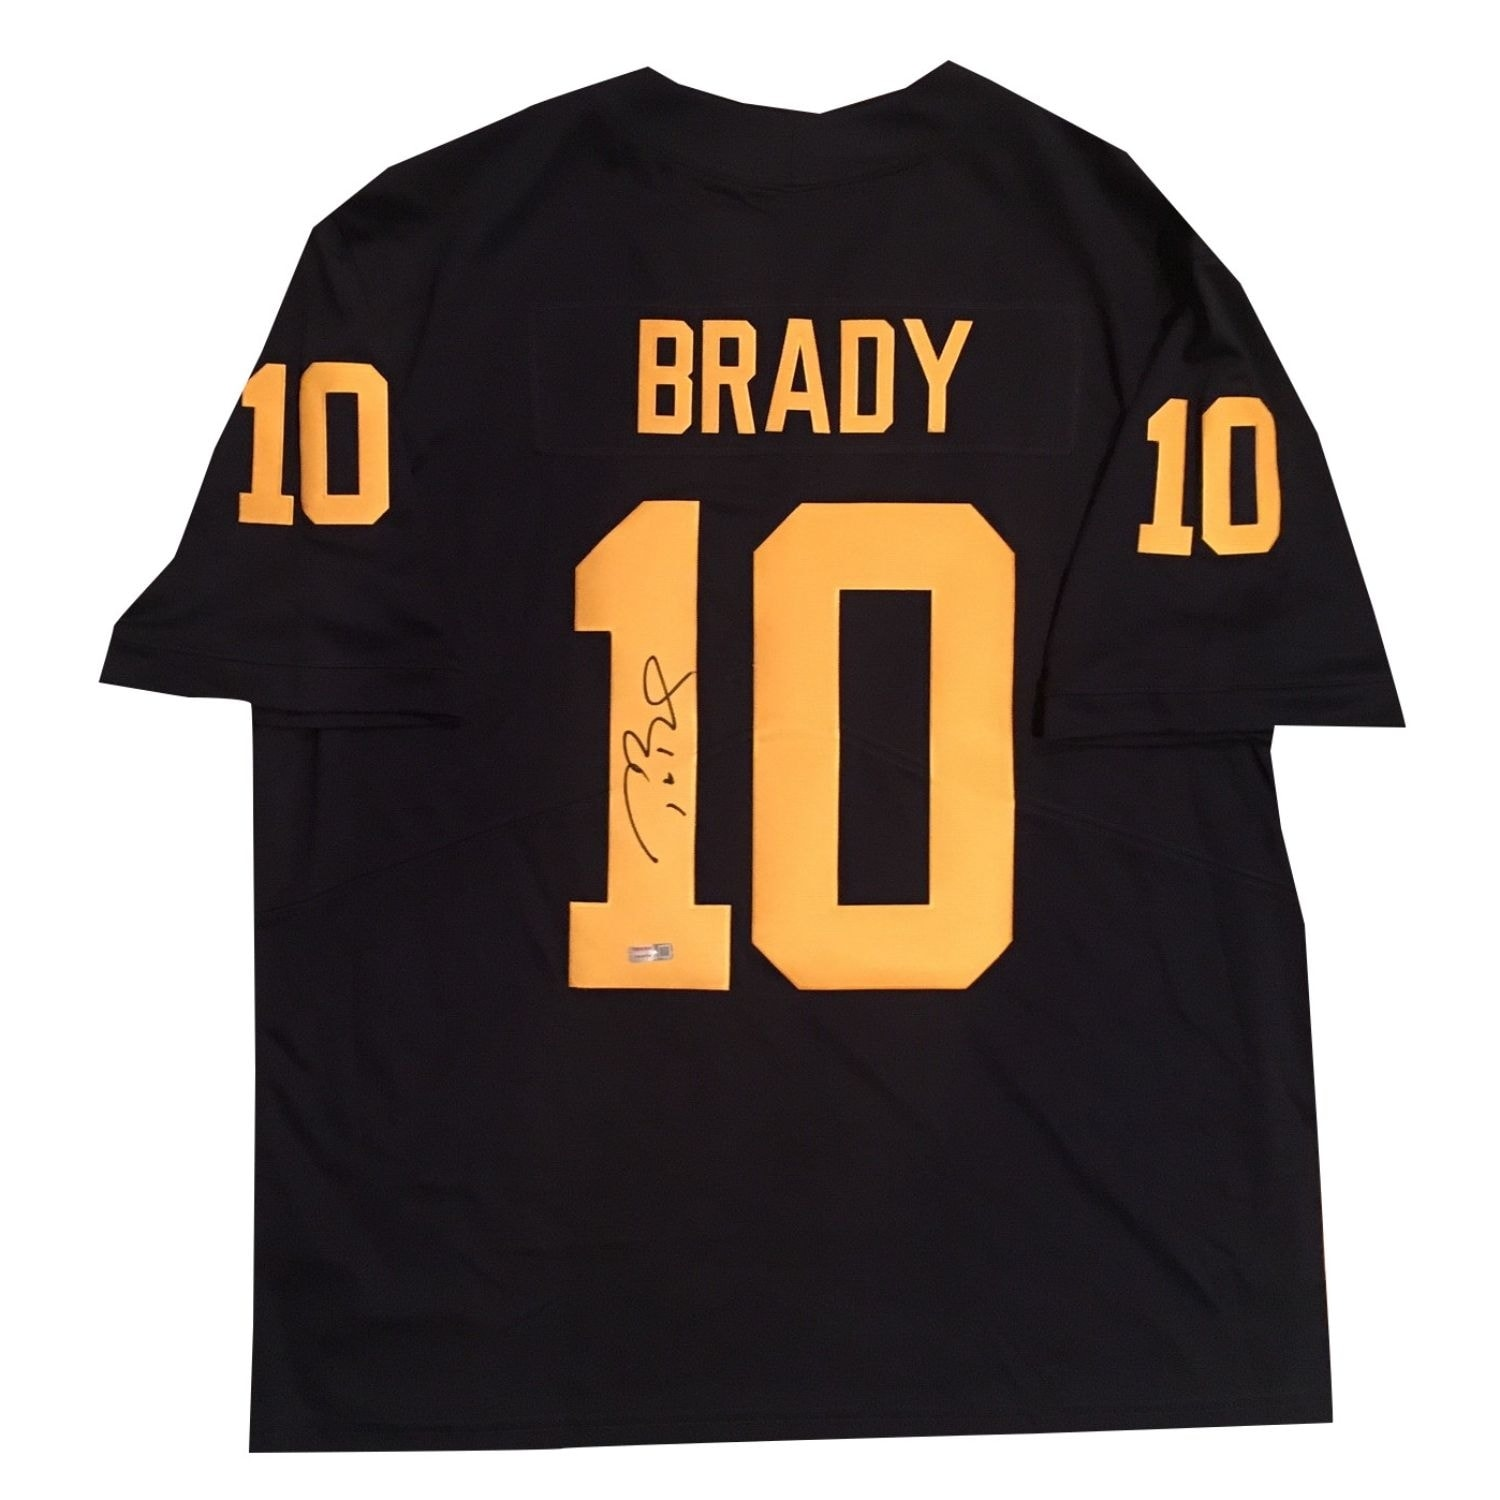 8e18d1408f4 Shop Tom Brady Autographed Michigan Wolverines Signed Nike Football Jersey  TRISTAR COA - Free Shipping Today - Overstock - 19454839